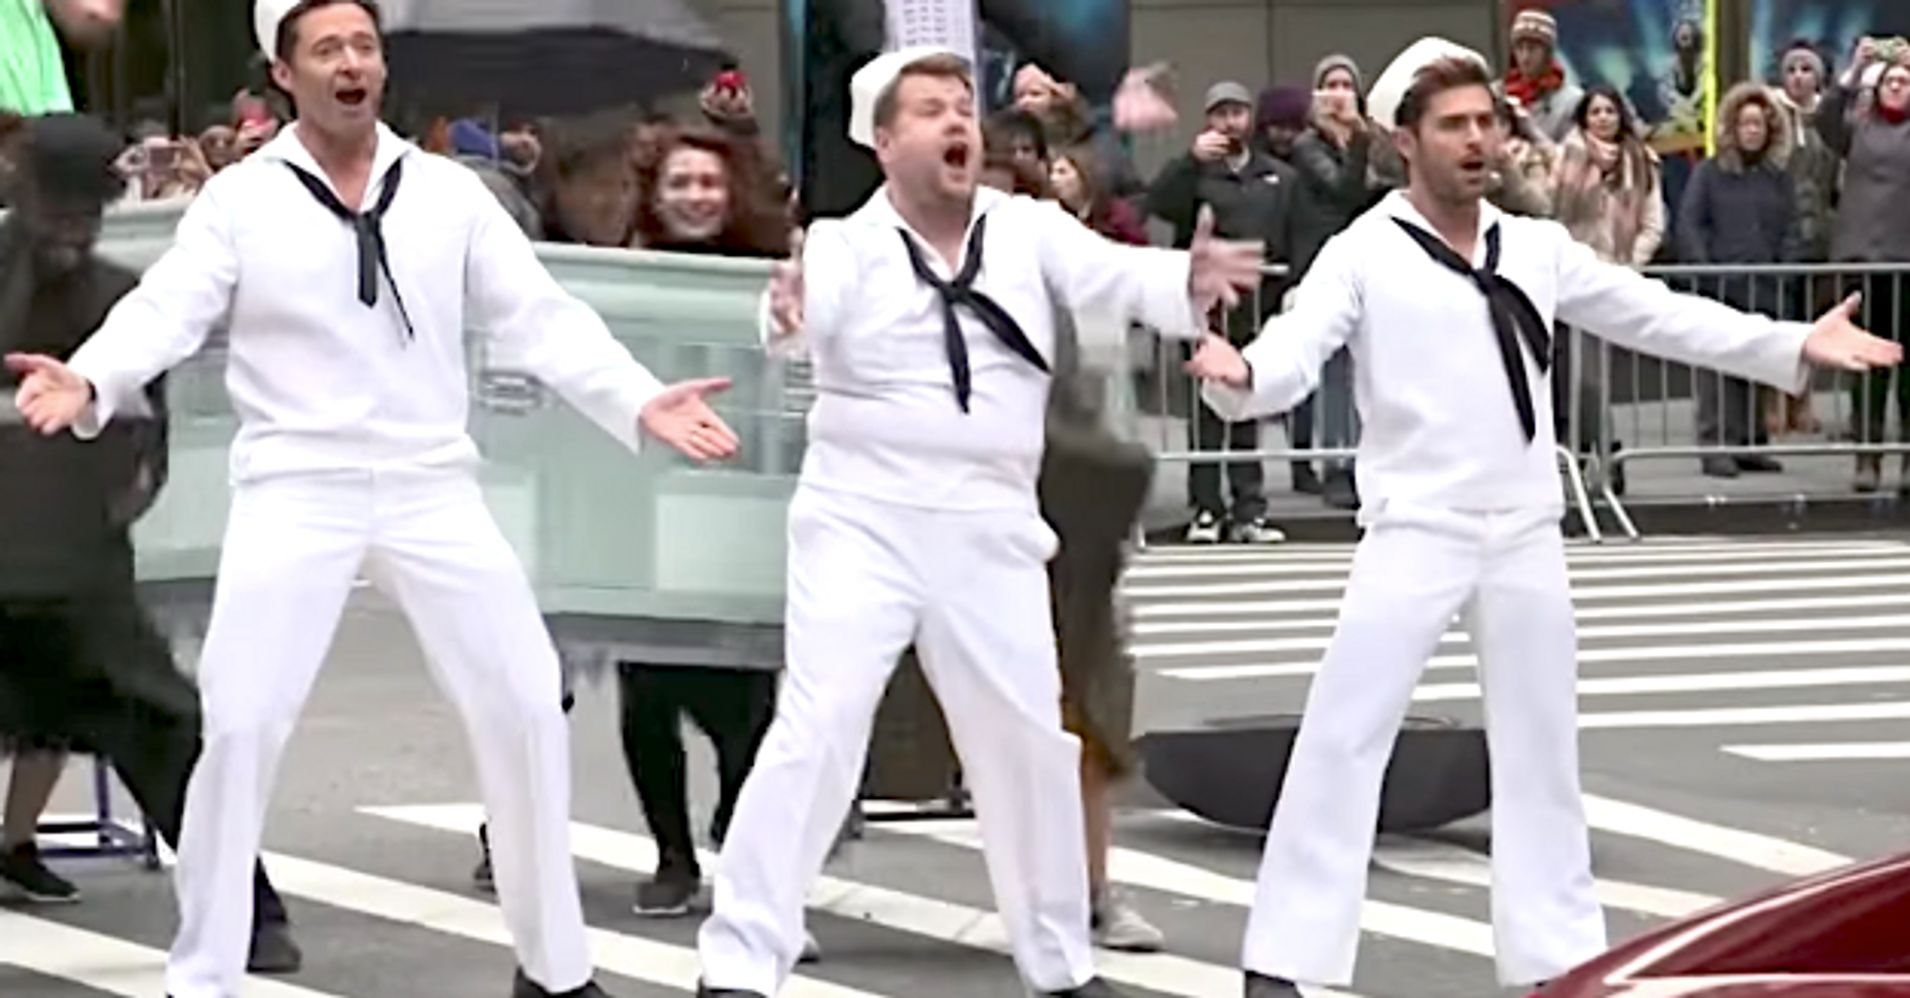 James Corden, Hugh Jackman, Zendaya, Zac Efron Bring The Circus To NYC Streets